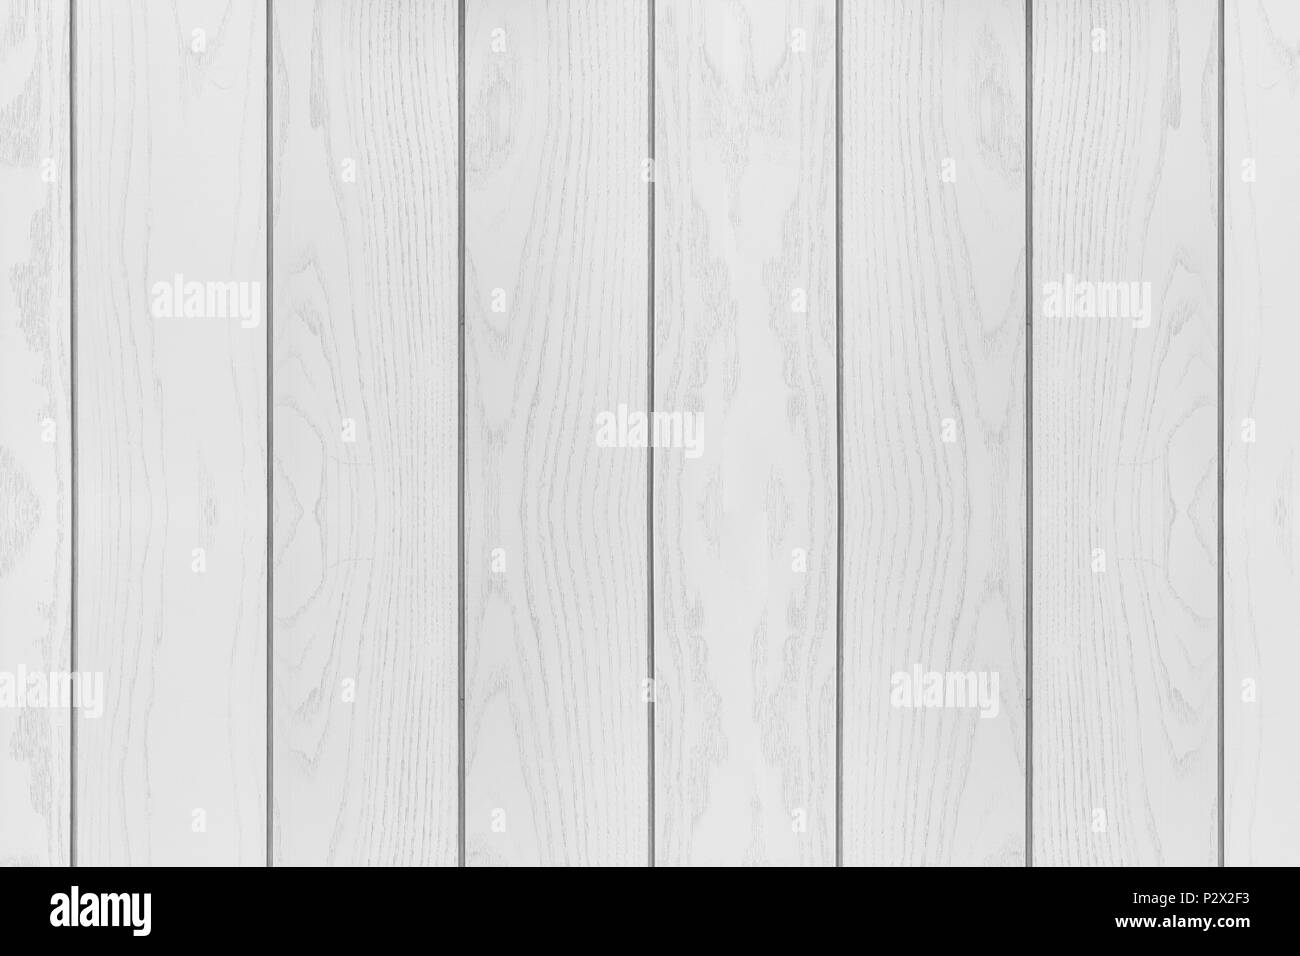 Detail white wood board texture, image is horizontal abstract pattern background. - Stock Image